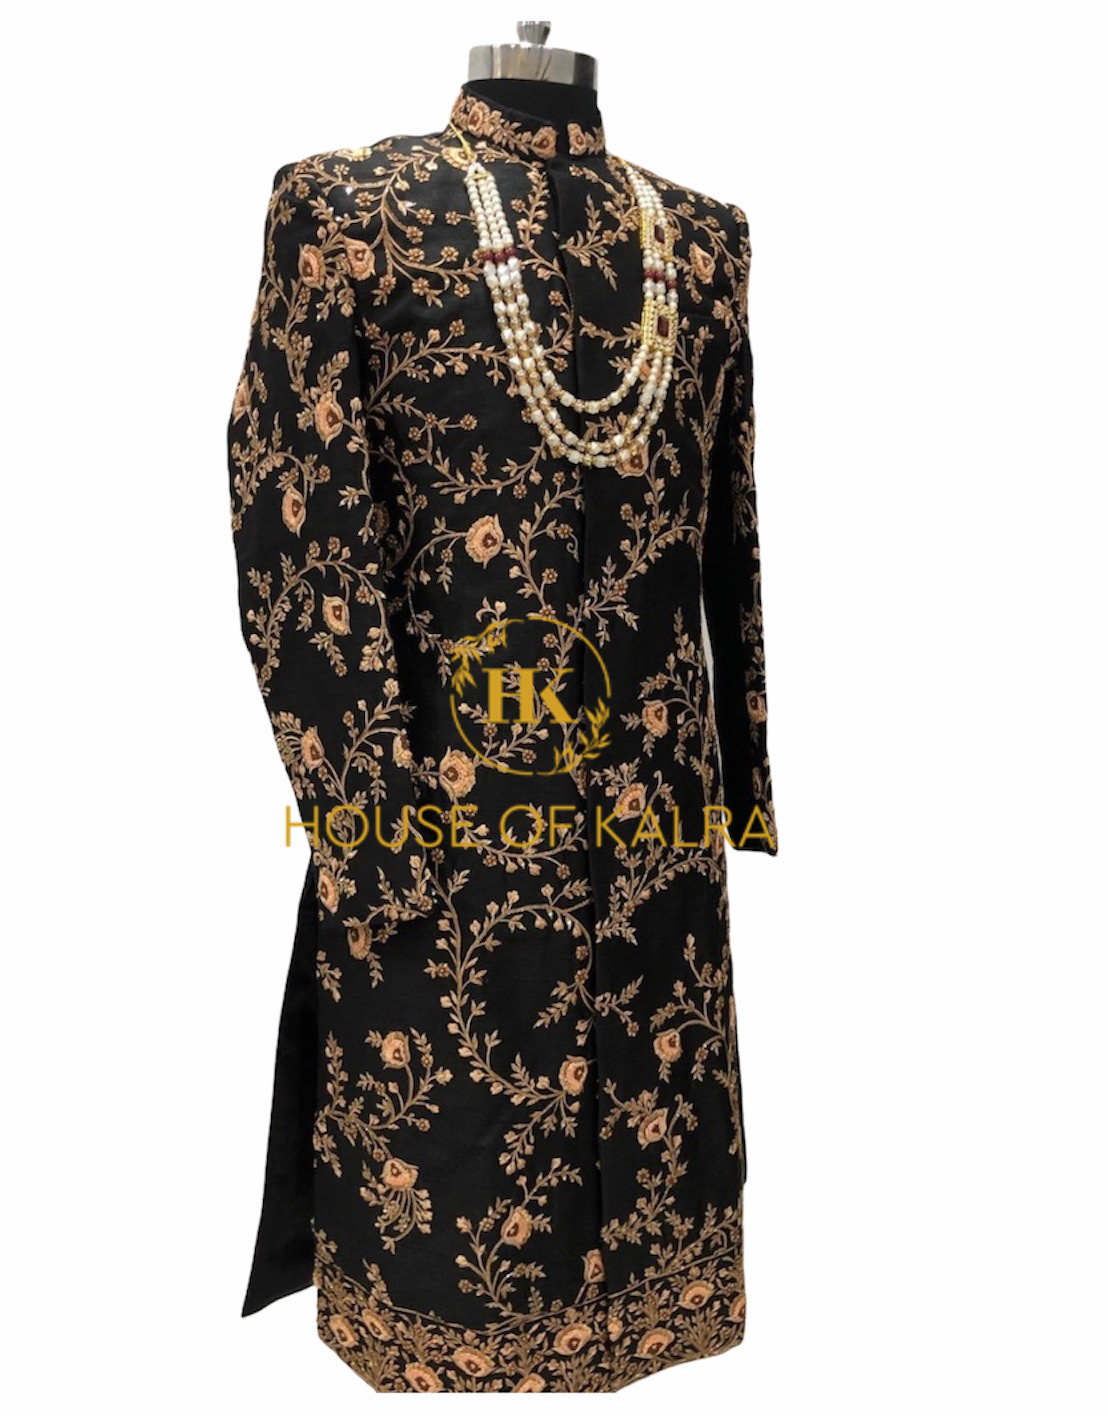 Affordable india wedding sherwani for groom